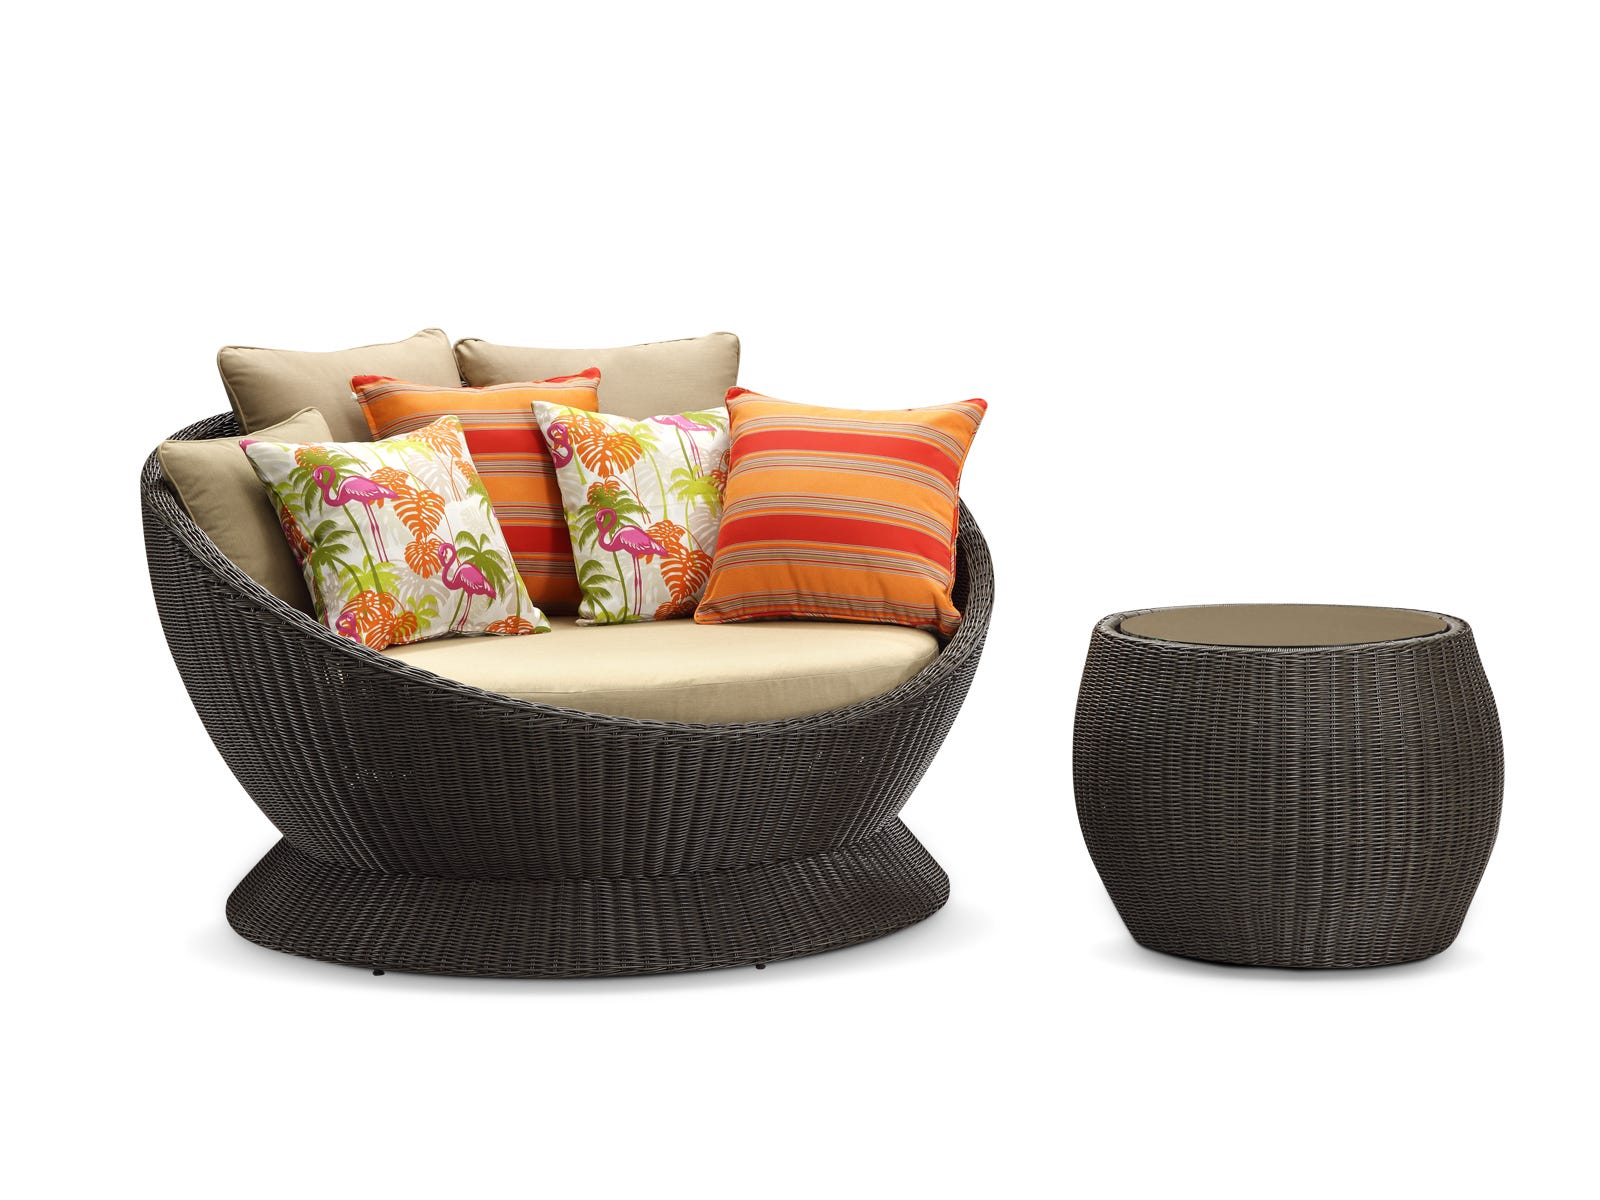 outdoor-furniture-daybed-wicker-sunbrella-bahama-2pc-winston-heatherbeige-web